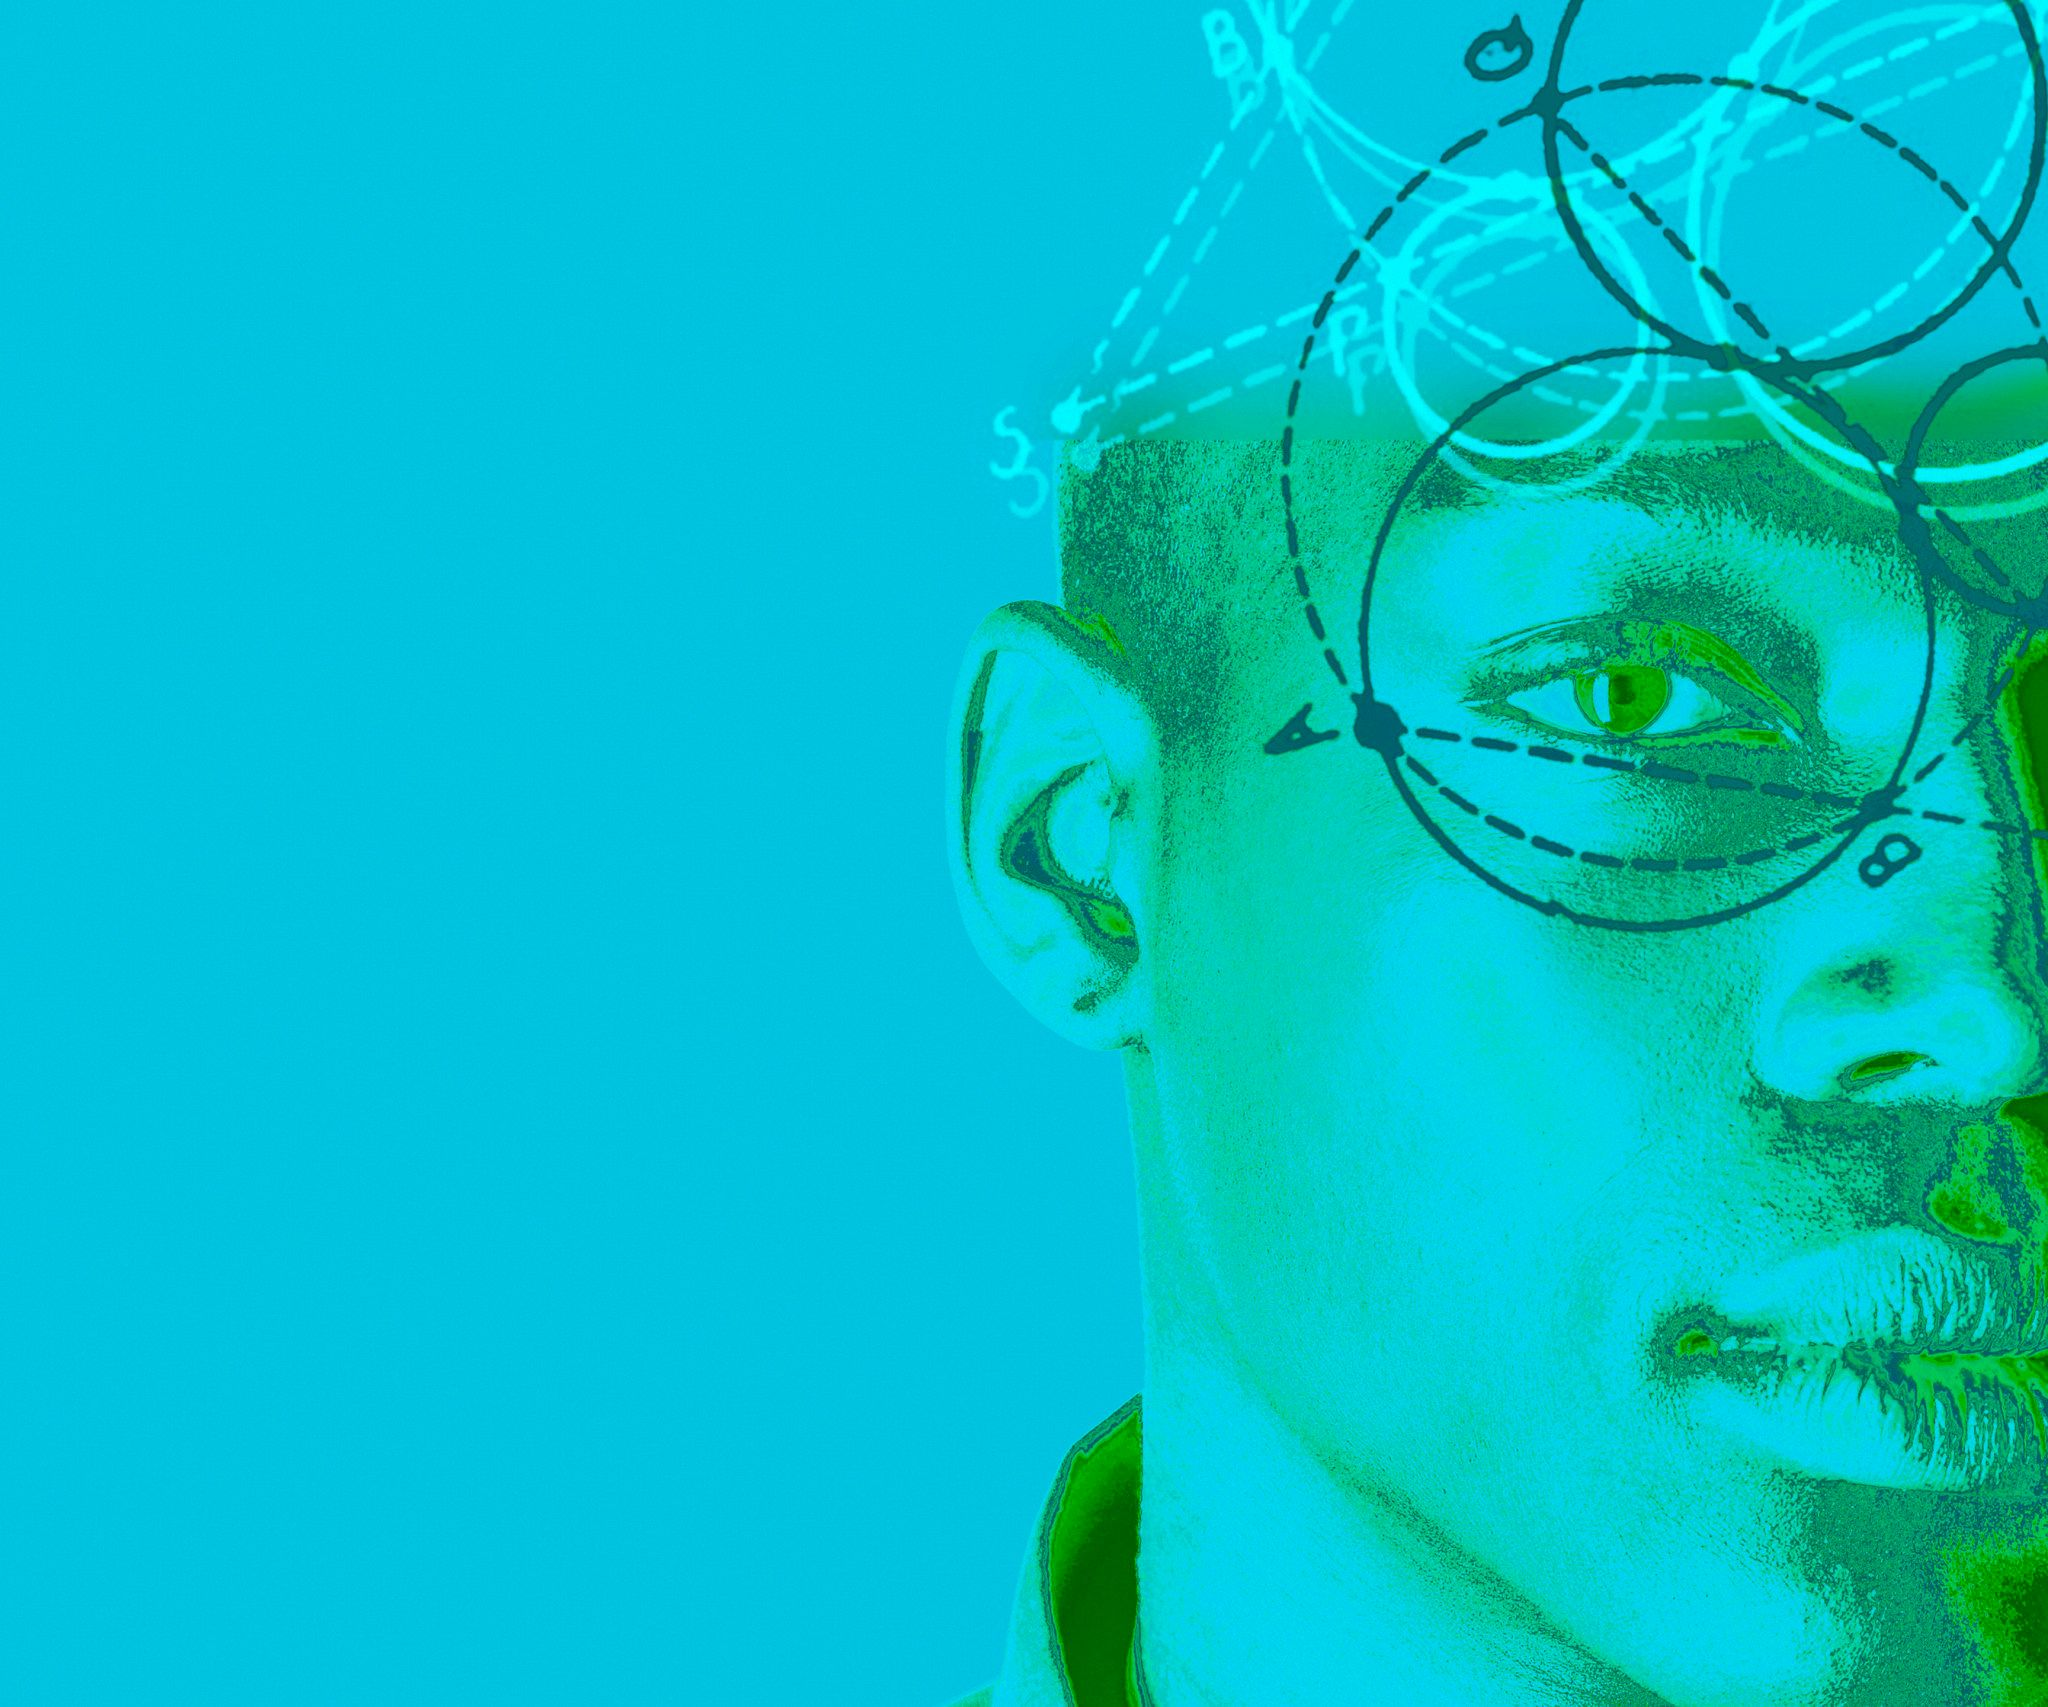 A new theory suggests that there are two distinct phases of visual processing.